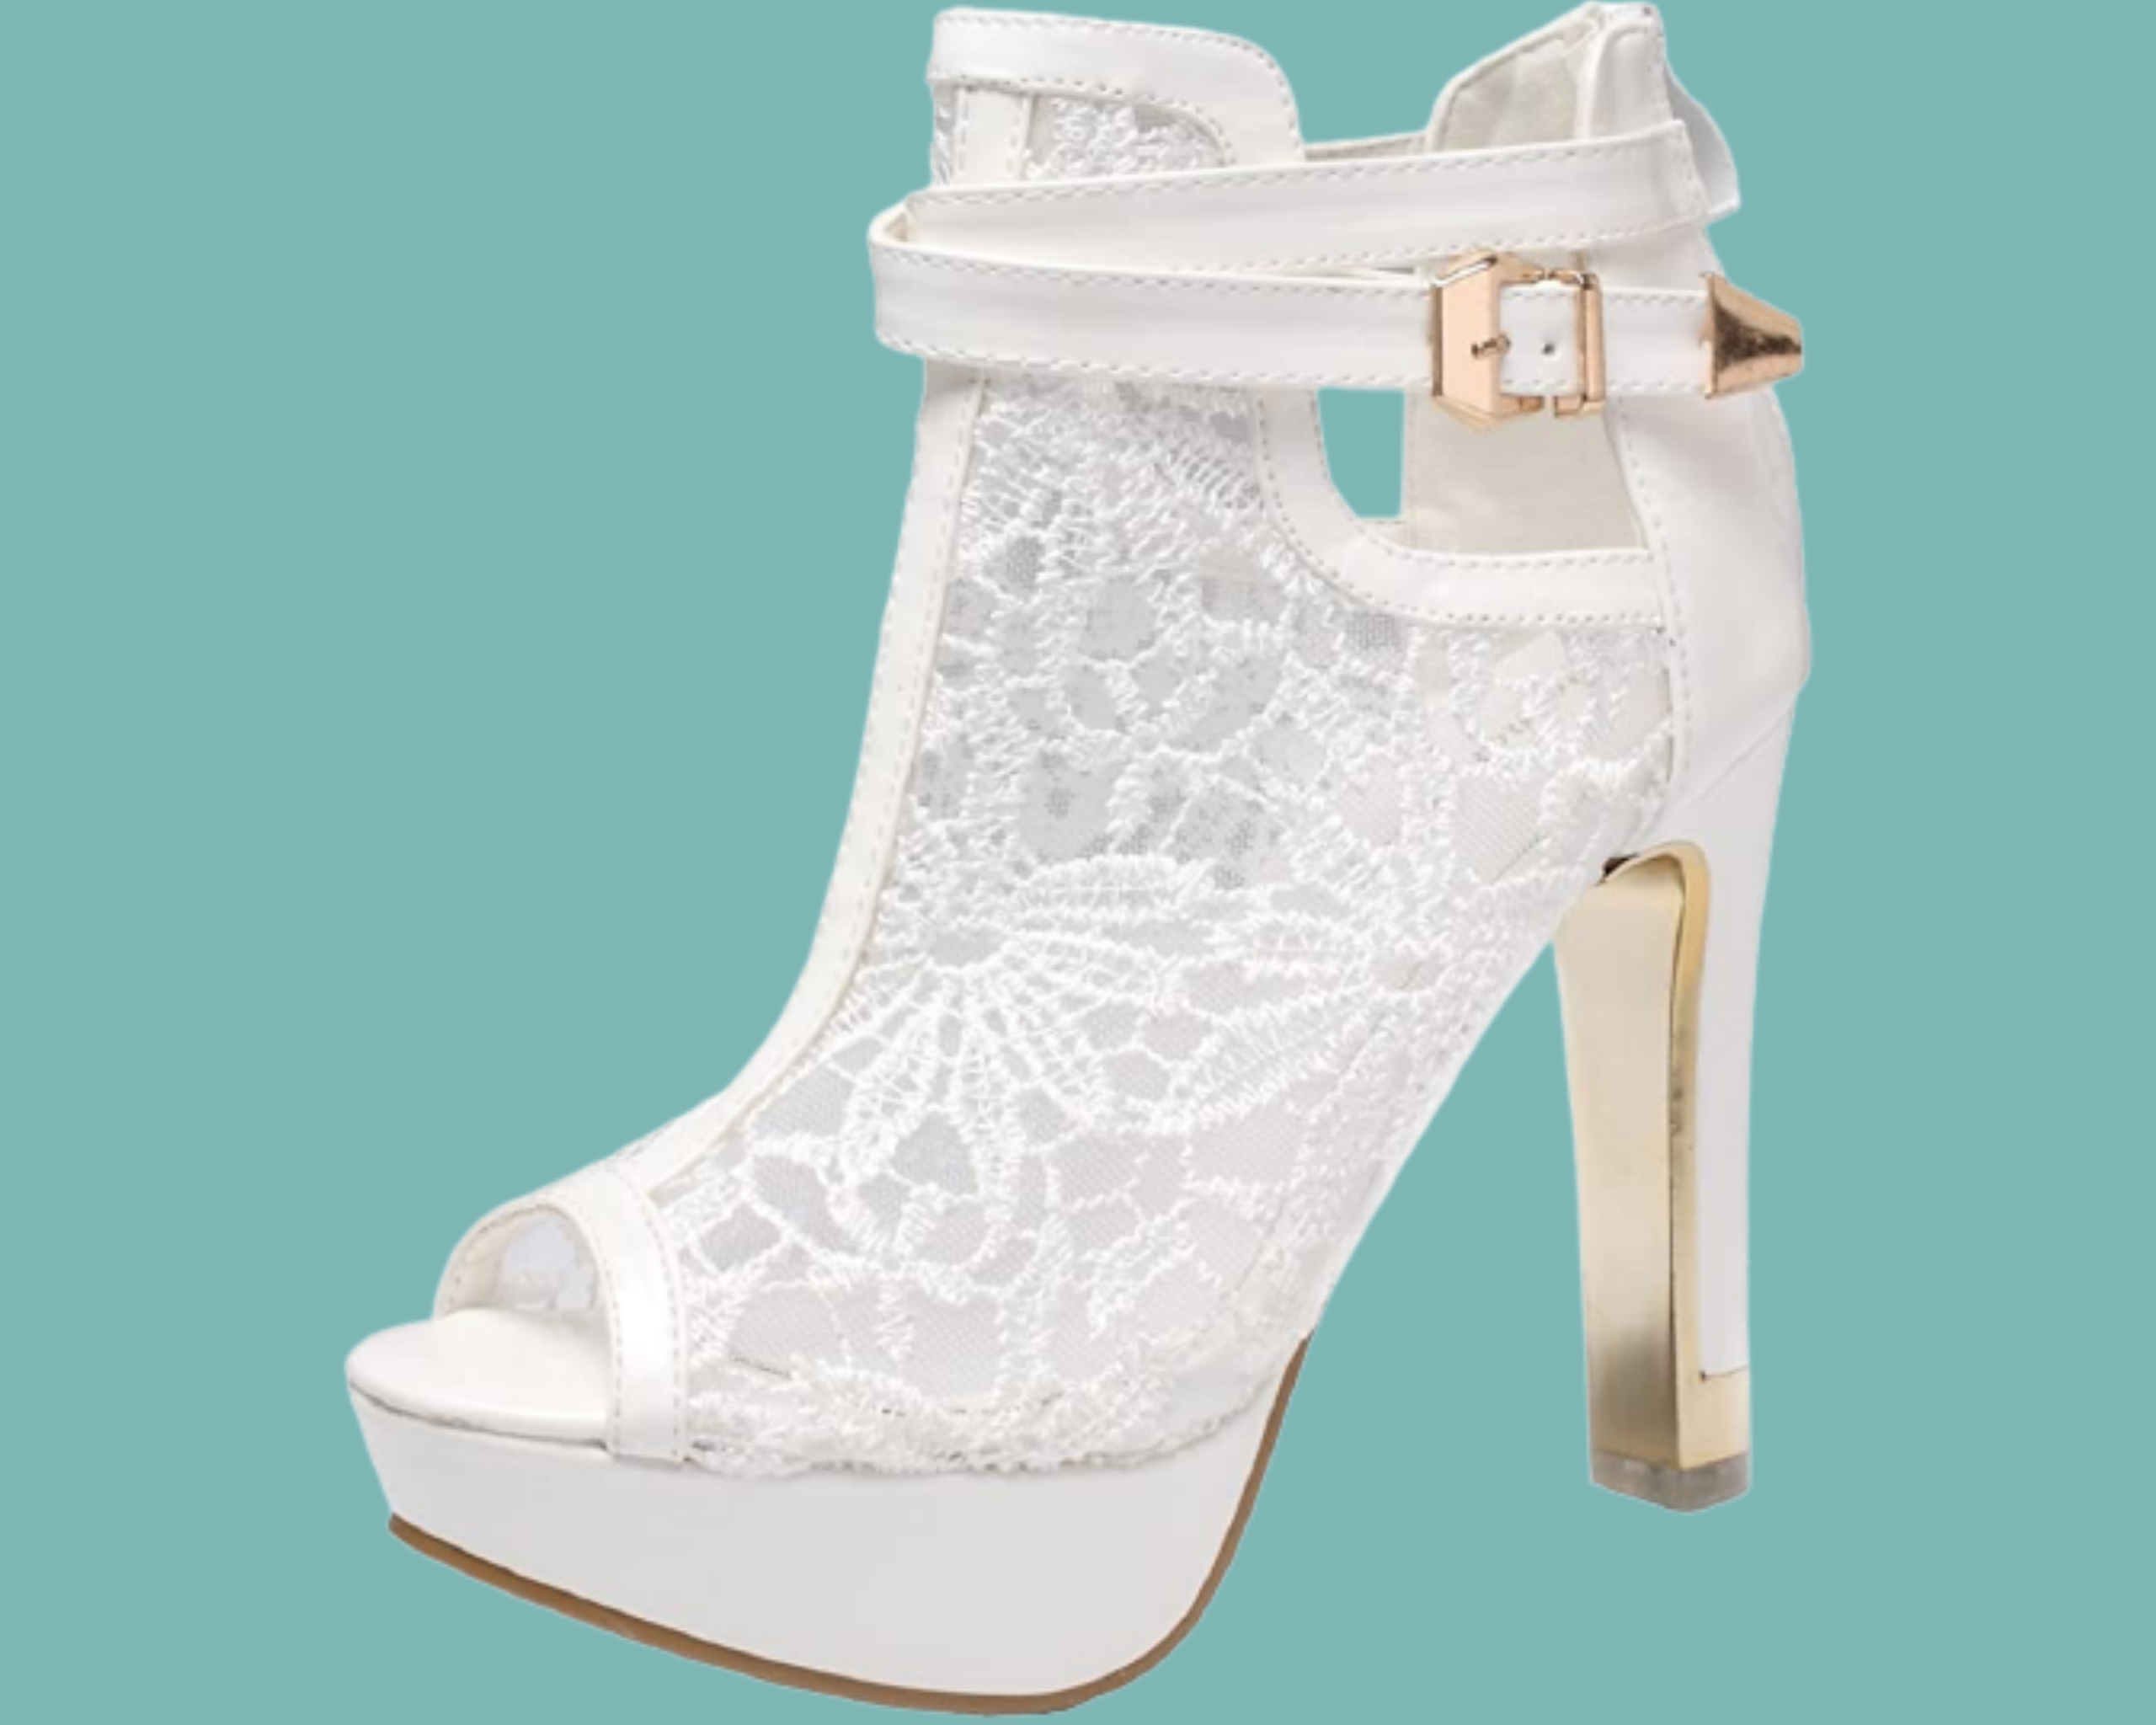 Best ankle lace shoe for wedding